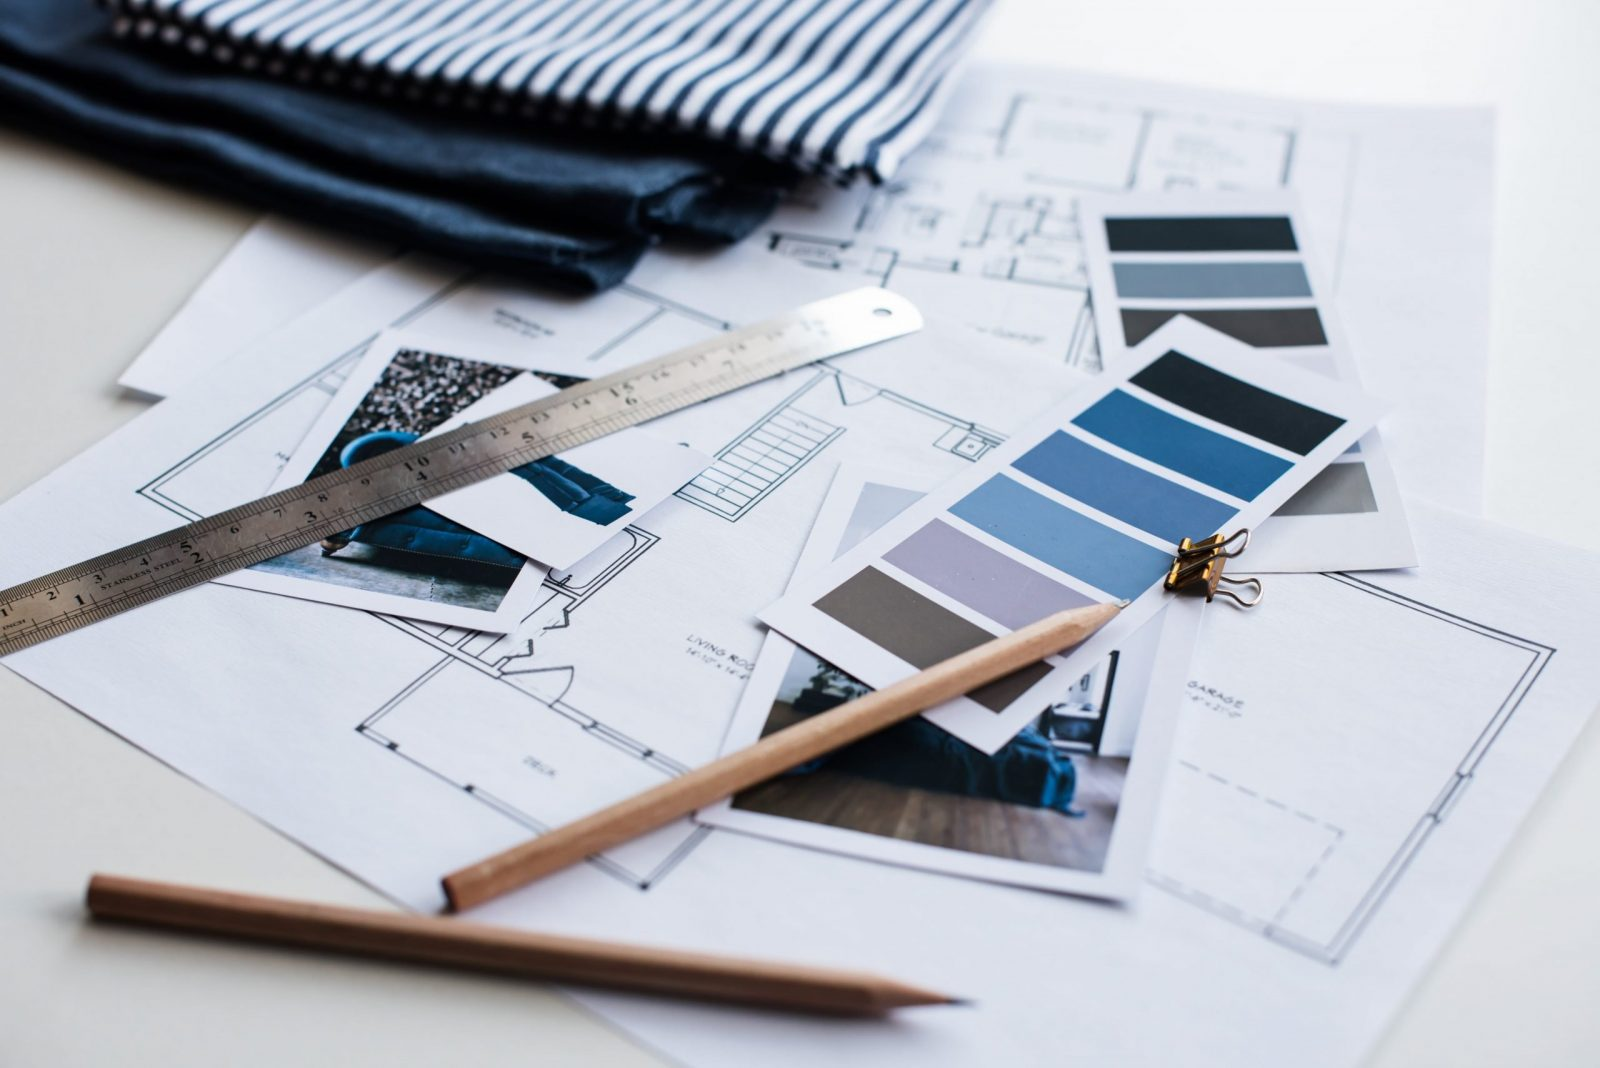 interior designers desk swatches plans aalofts design scaled